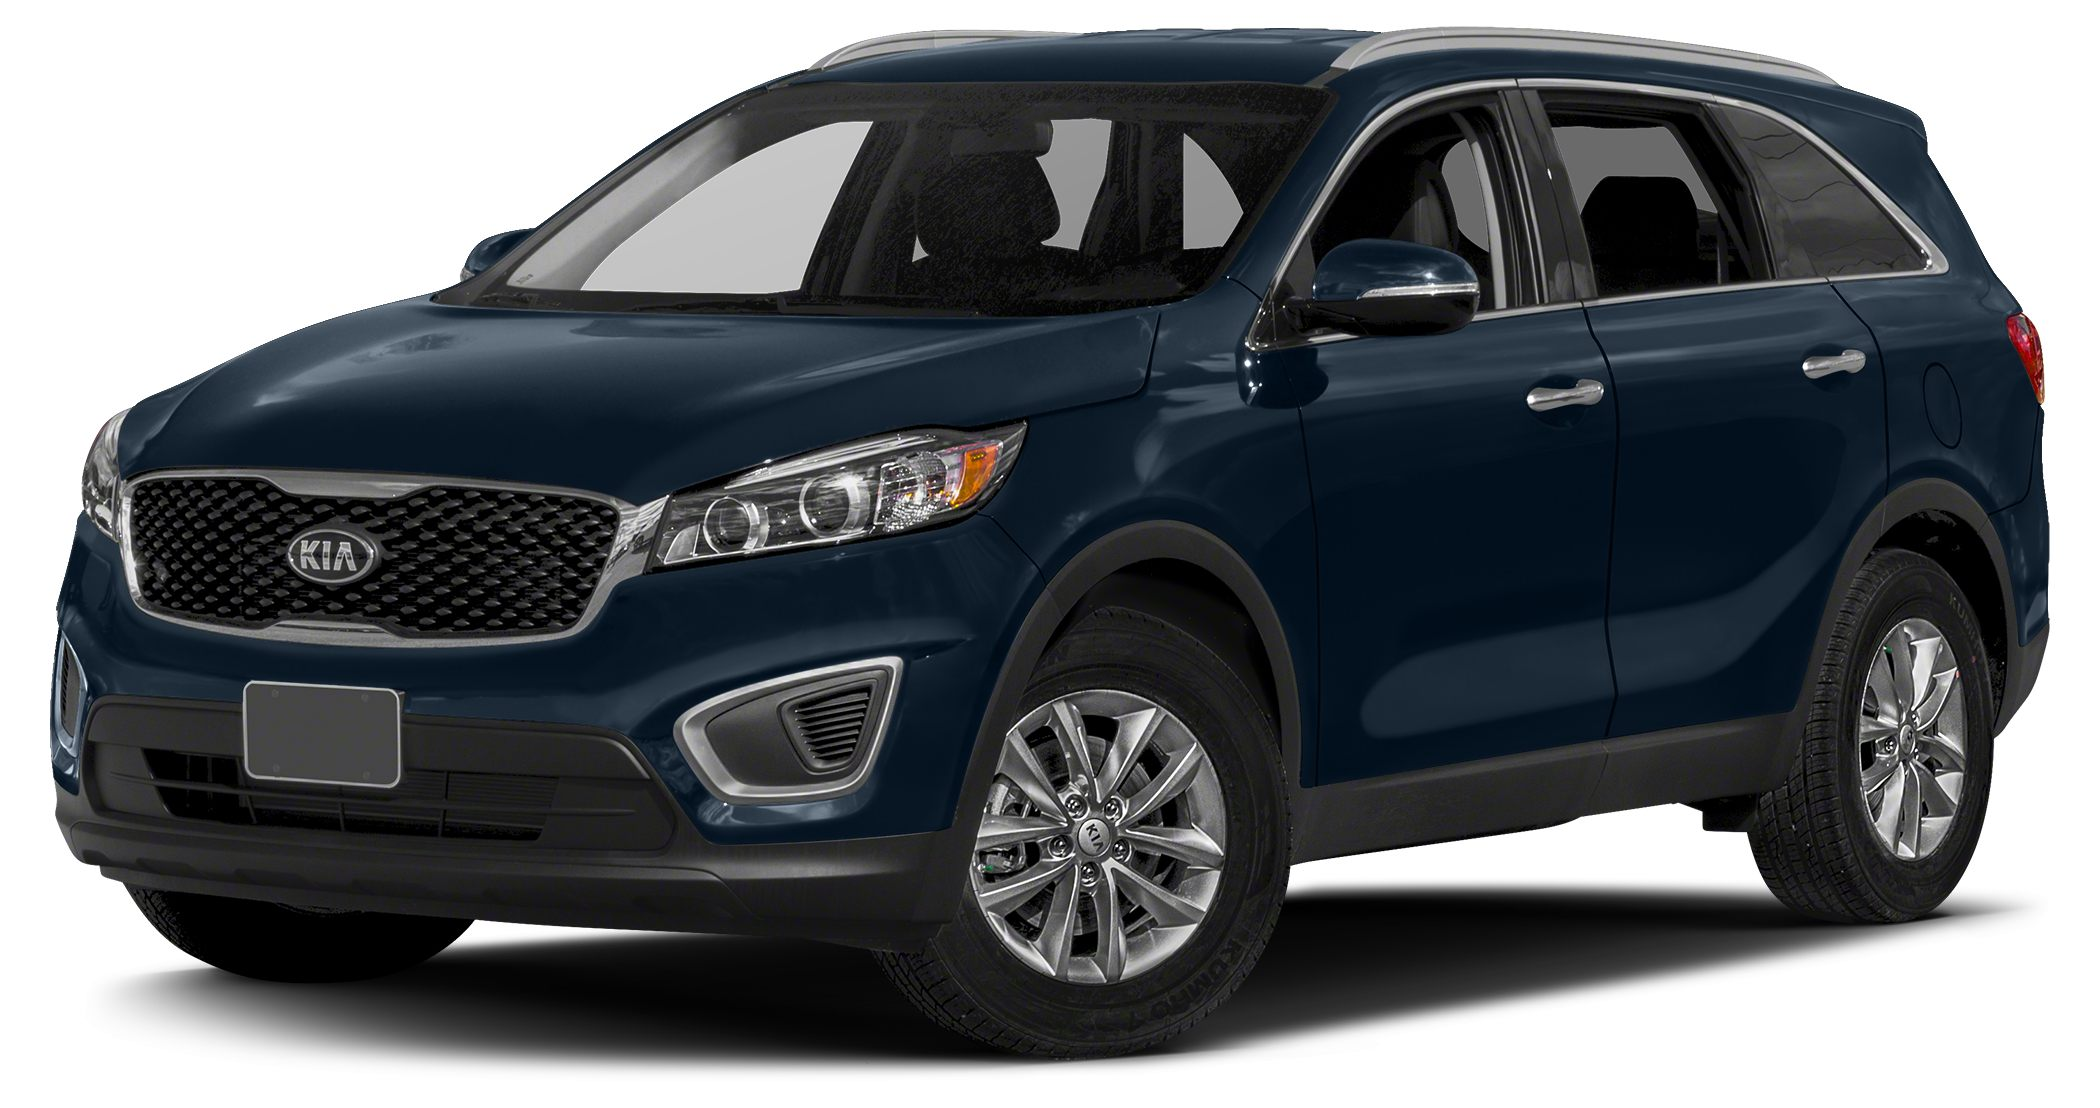 2018 Kia Sorento 24 LX The 2018 Sorento is the most refined yet Designed with smooth sinuous li